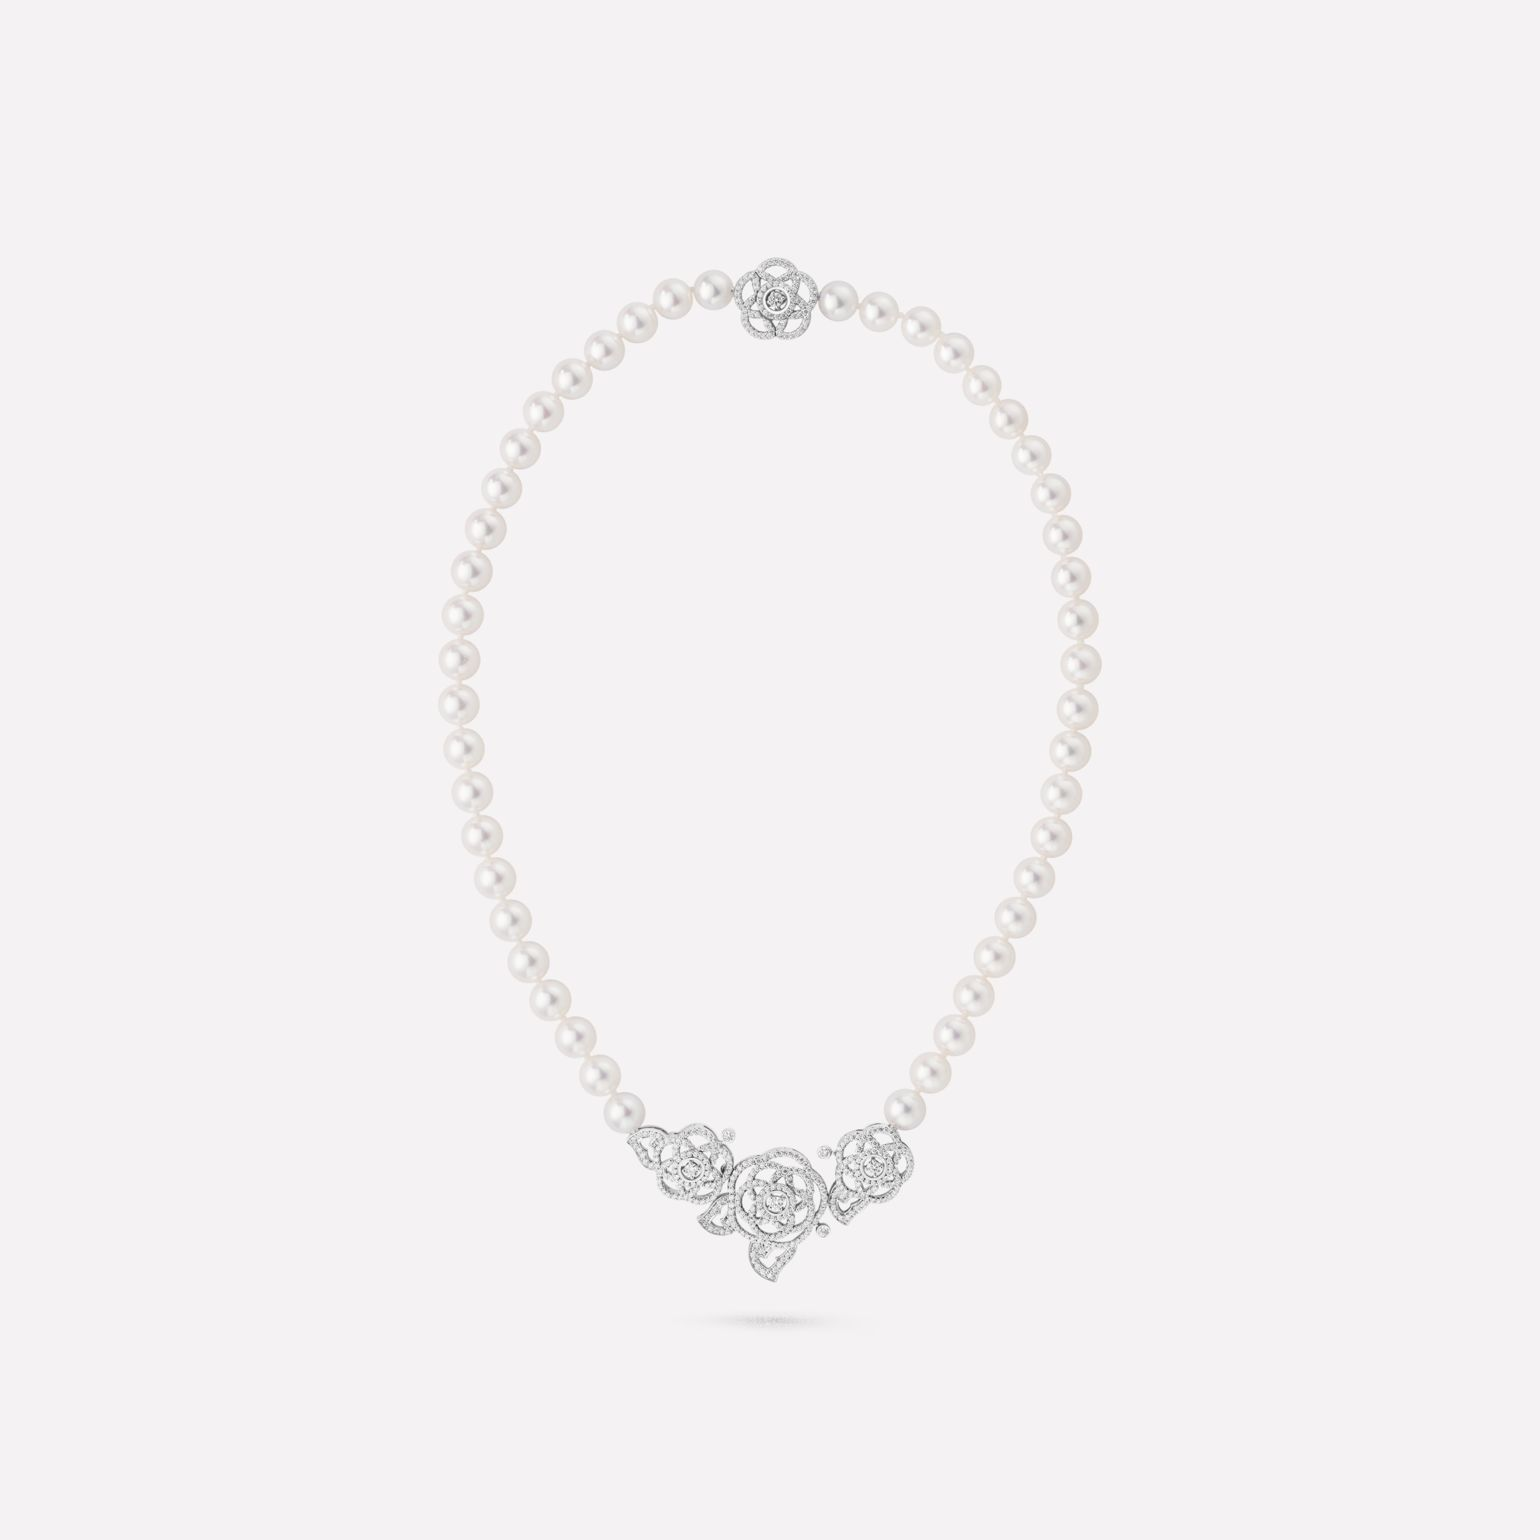 Camélia necklace Camélia Brodé bouquet necklace in 18K white gold, diamonds and cultured pearls